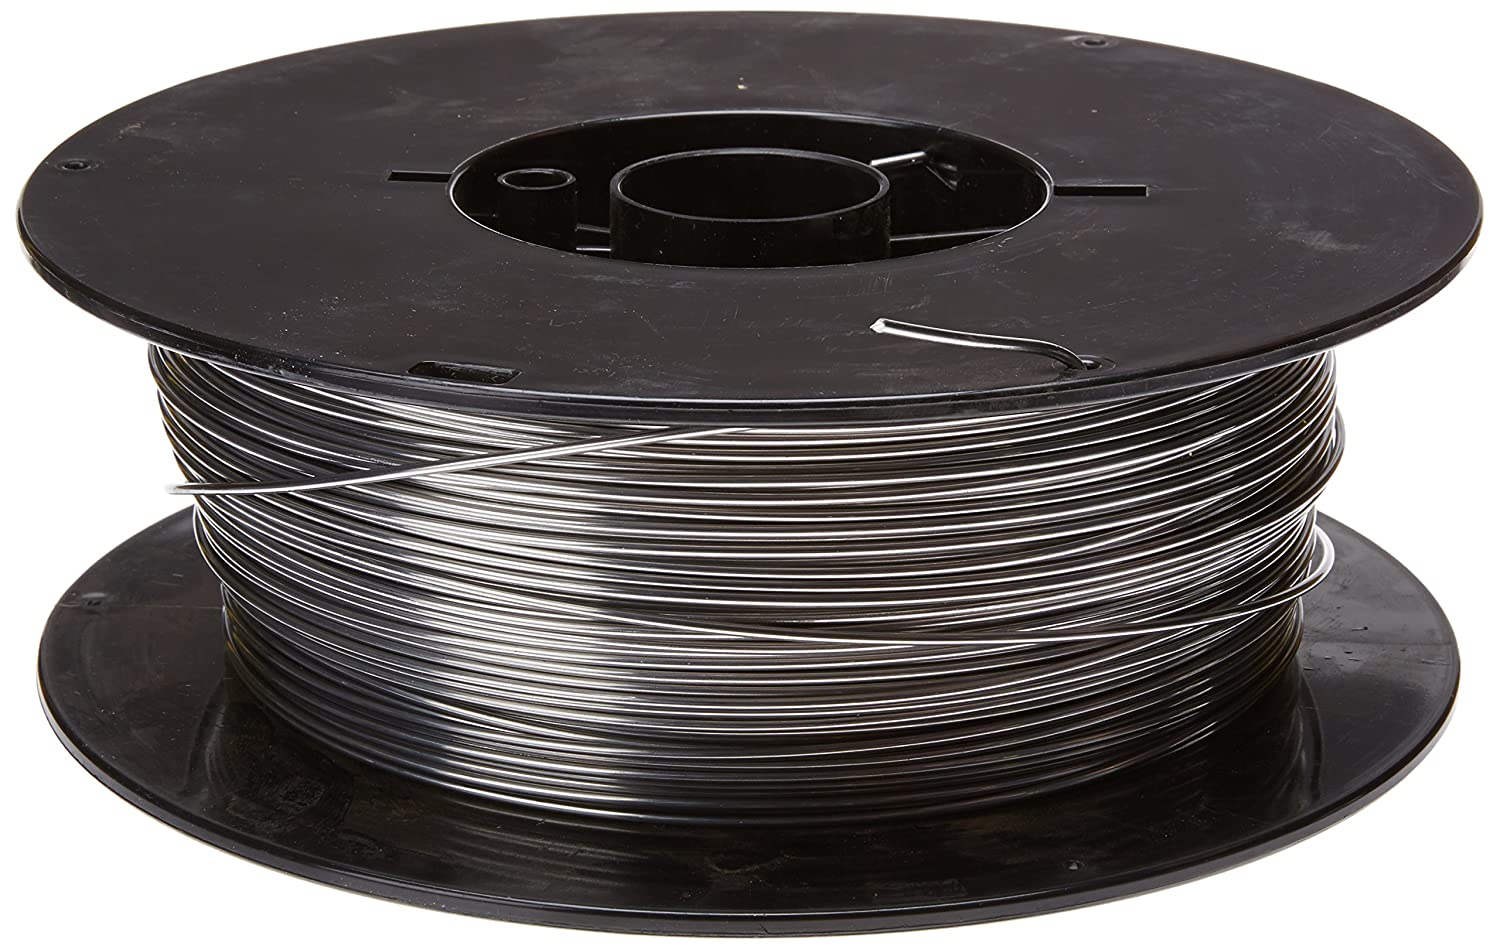 Amazon.com: Field Guardian 12-1/2-Guage Aluminum Wire, 1/4 Miles ...